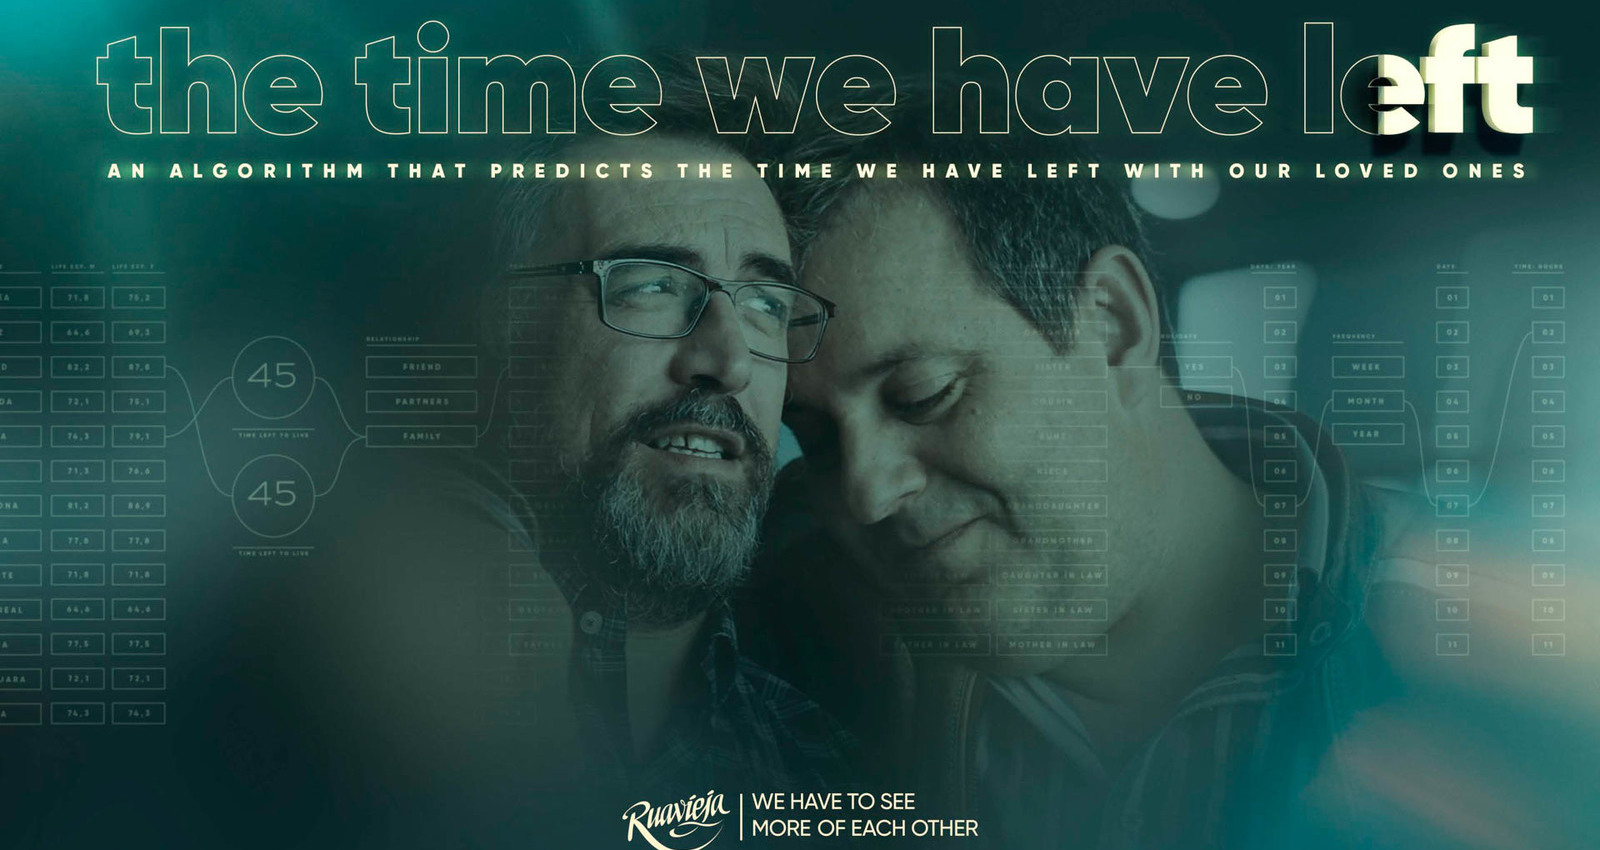 THE TIME WE HAVE LEFT